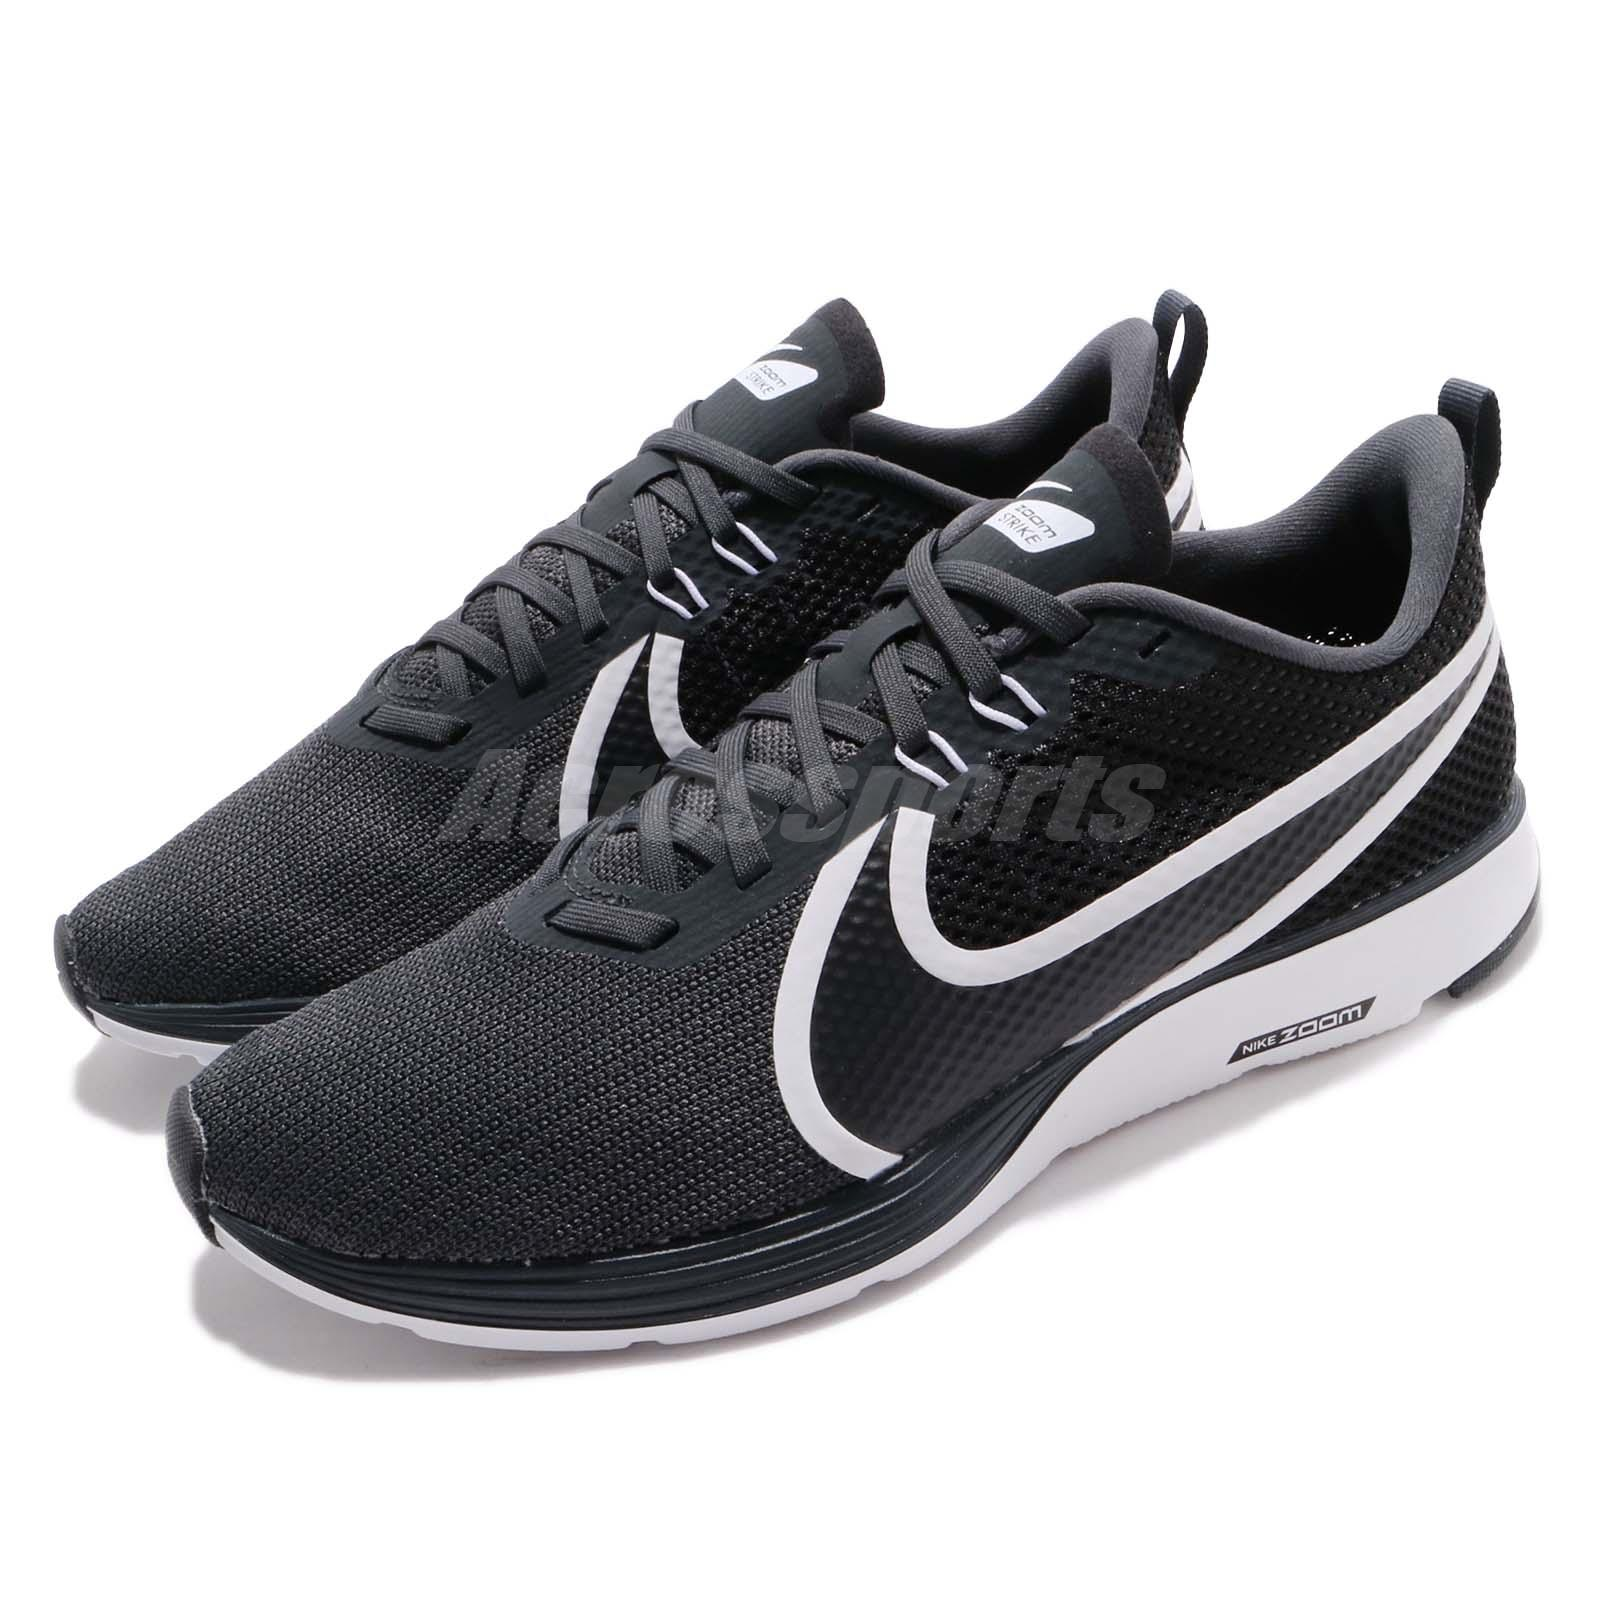 e3f62a87b5d29 Details about Nike Zoom Strike 2 Black White Men Running Training Shoes  Sneakers AO1912-001